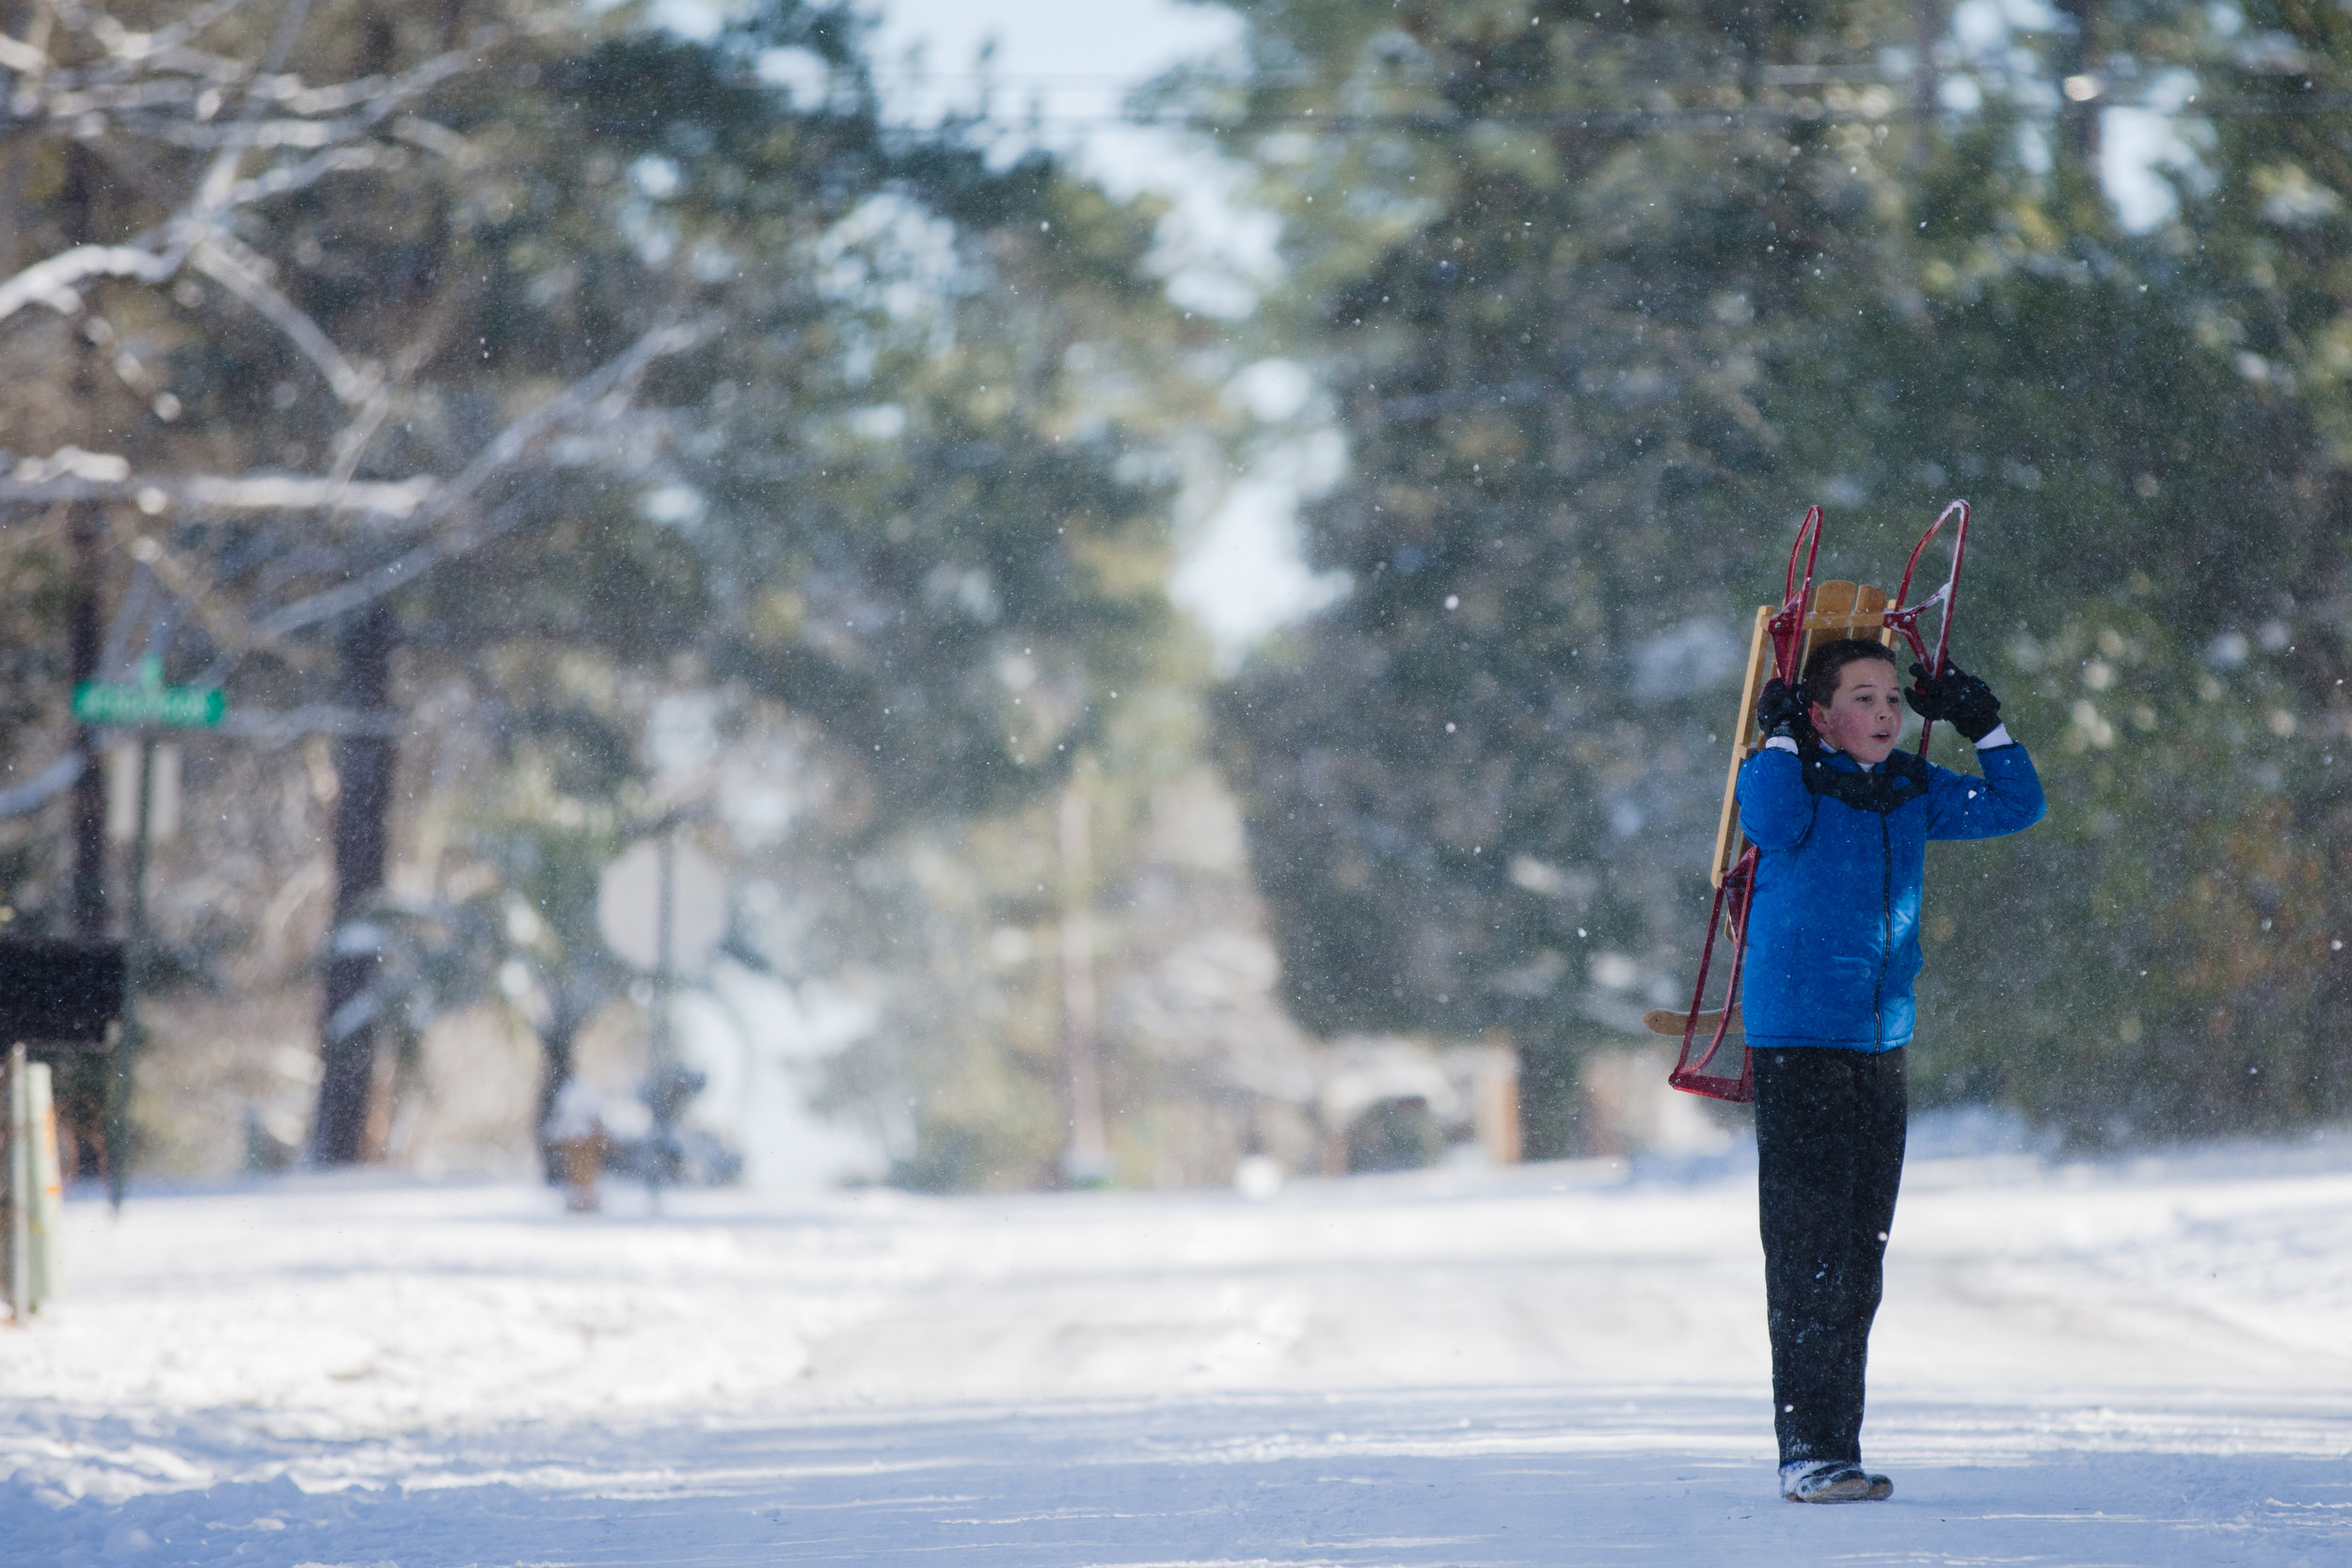 Shawn Michael, 11, hauls a sled to the starting line on an icy road in Sumter.